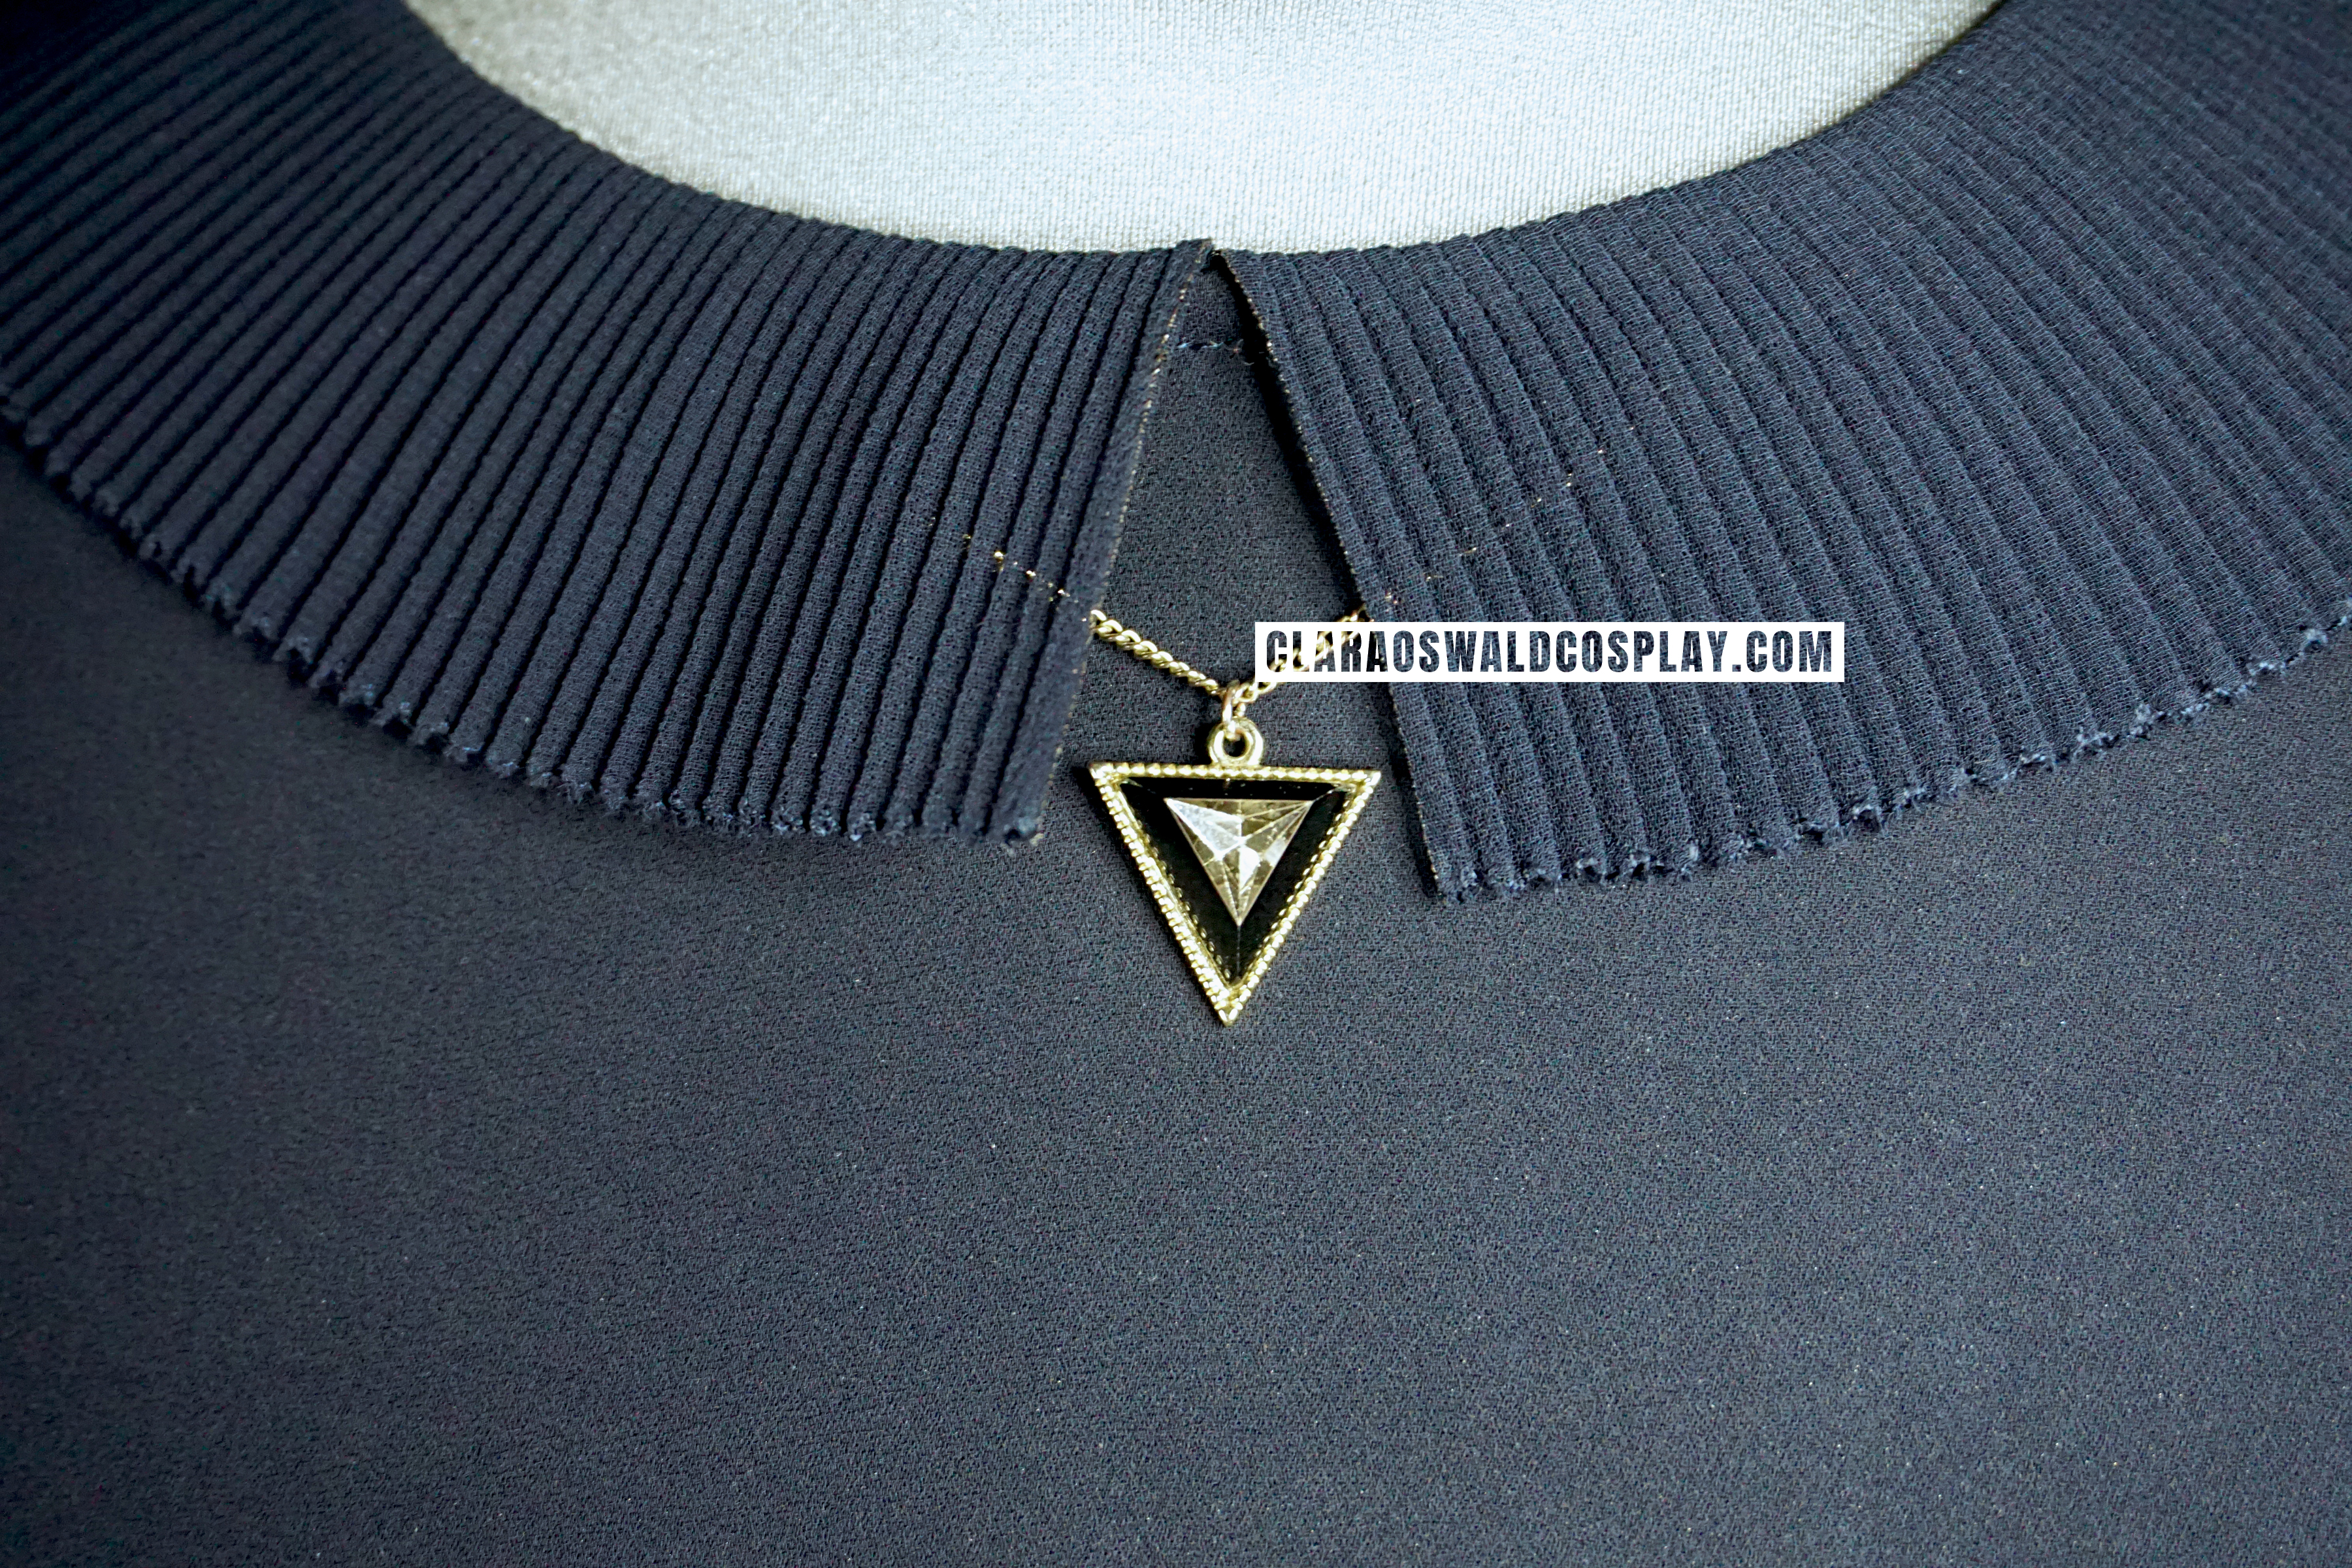 The Topshop / ASOS / River Island / H&M Triangle Necklace worn by Clara Oswald in Sleep No More